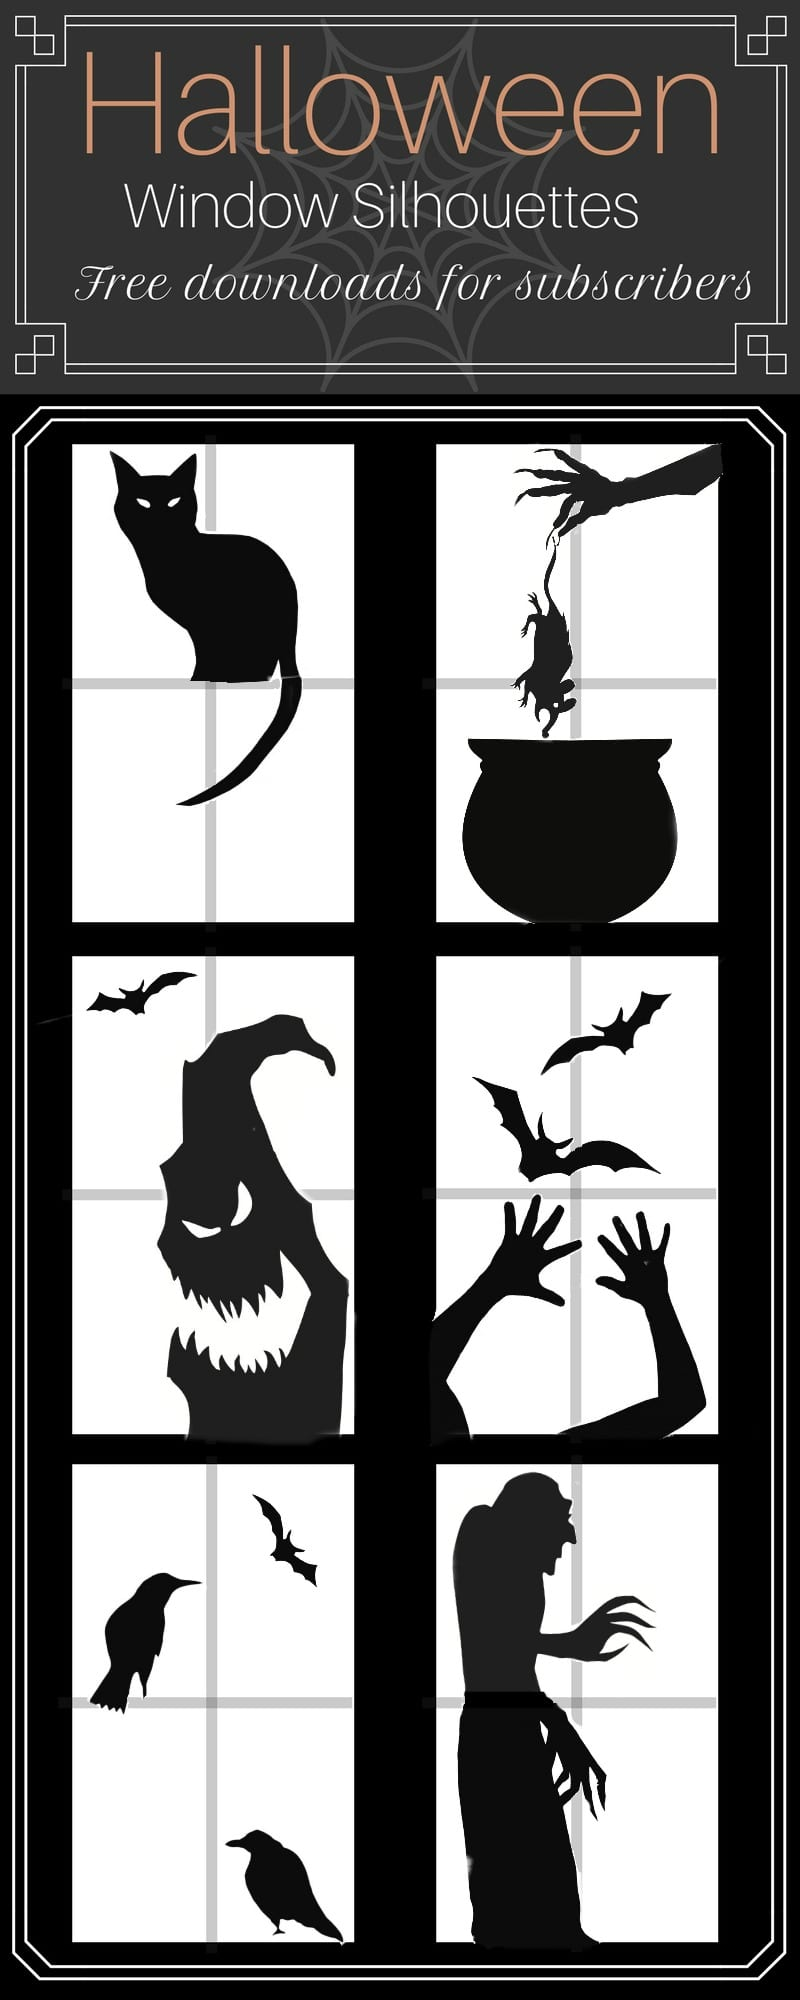 halloween window silhouettes template diy dollar ideas 22067 | Free Halloween Silhouettes for Windows by Snazzy Little Things 1